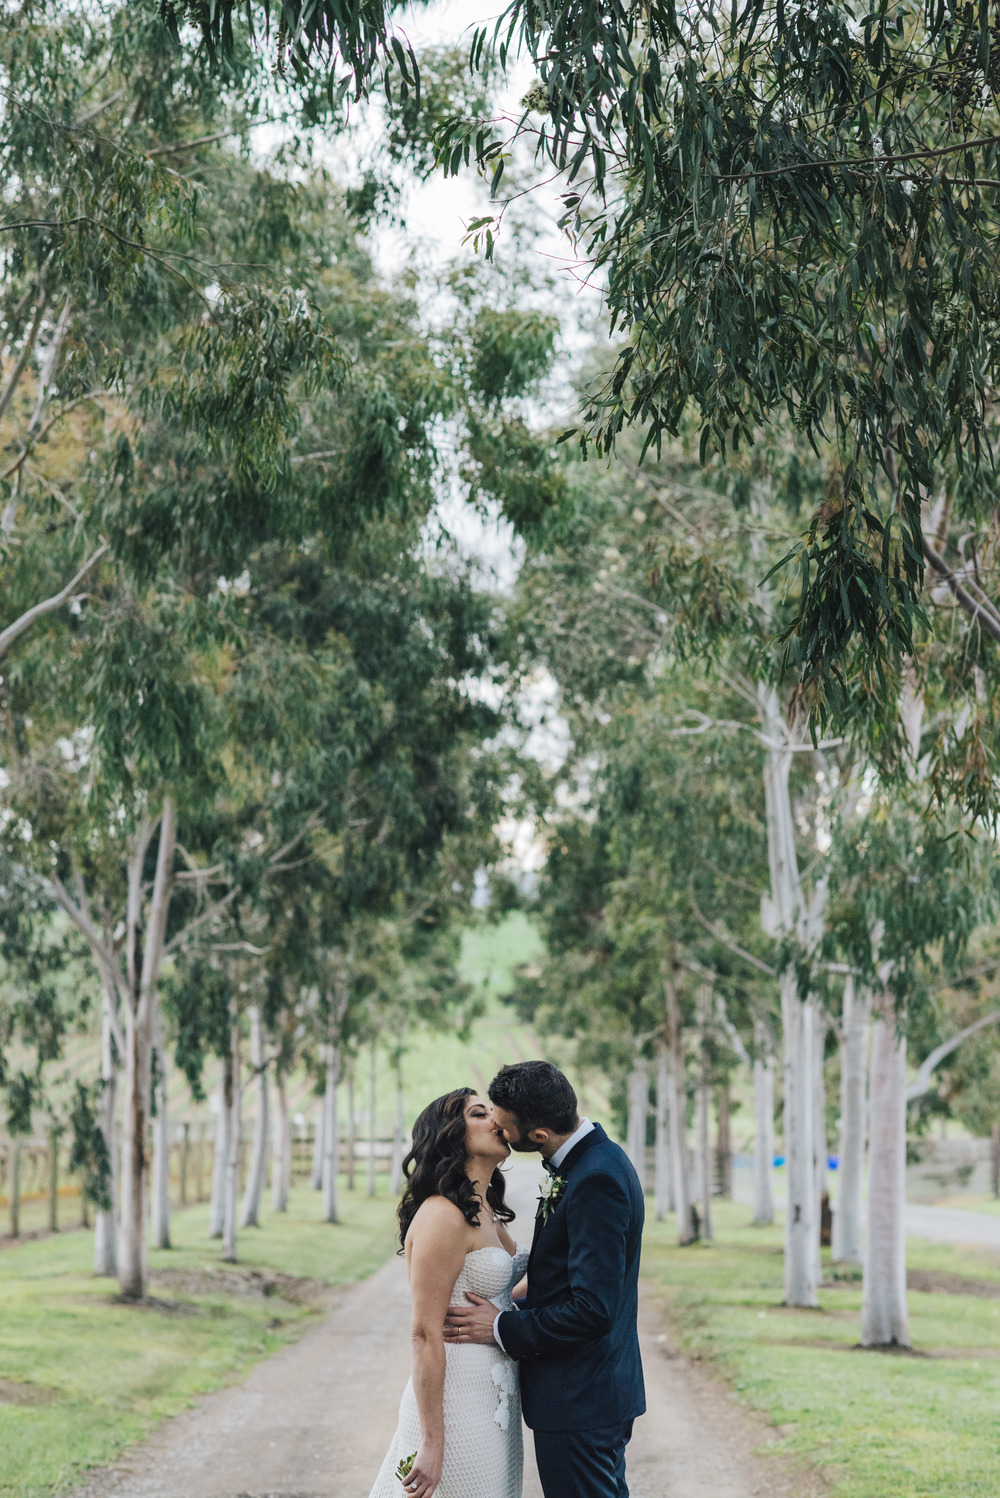 the-white-tree-photography-zonzo-estate-yarra-valley-australian-wedding-rustic-chic-wedding-68